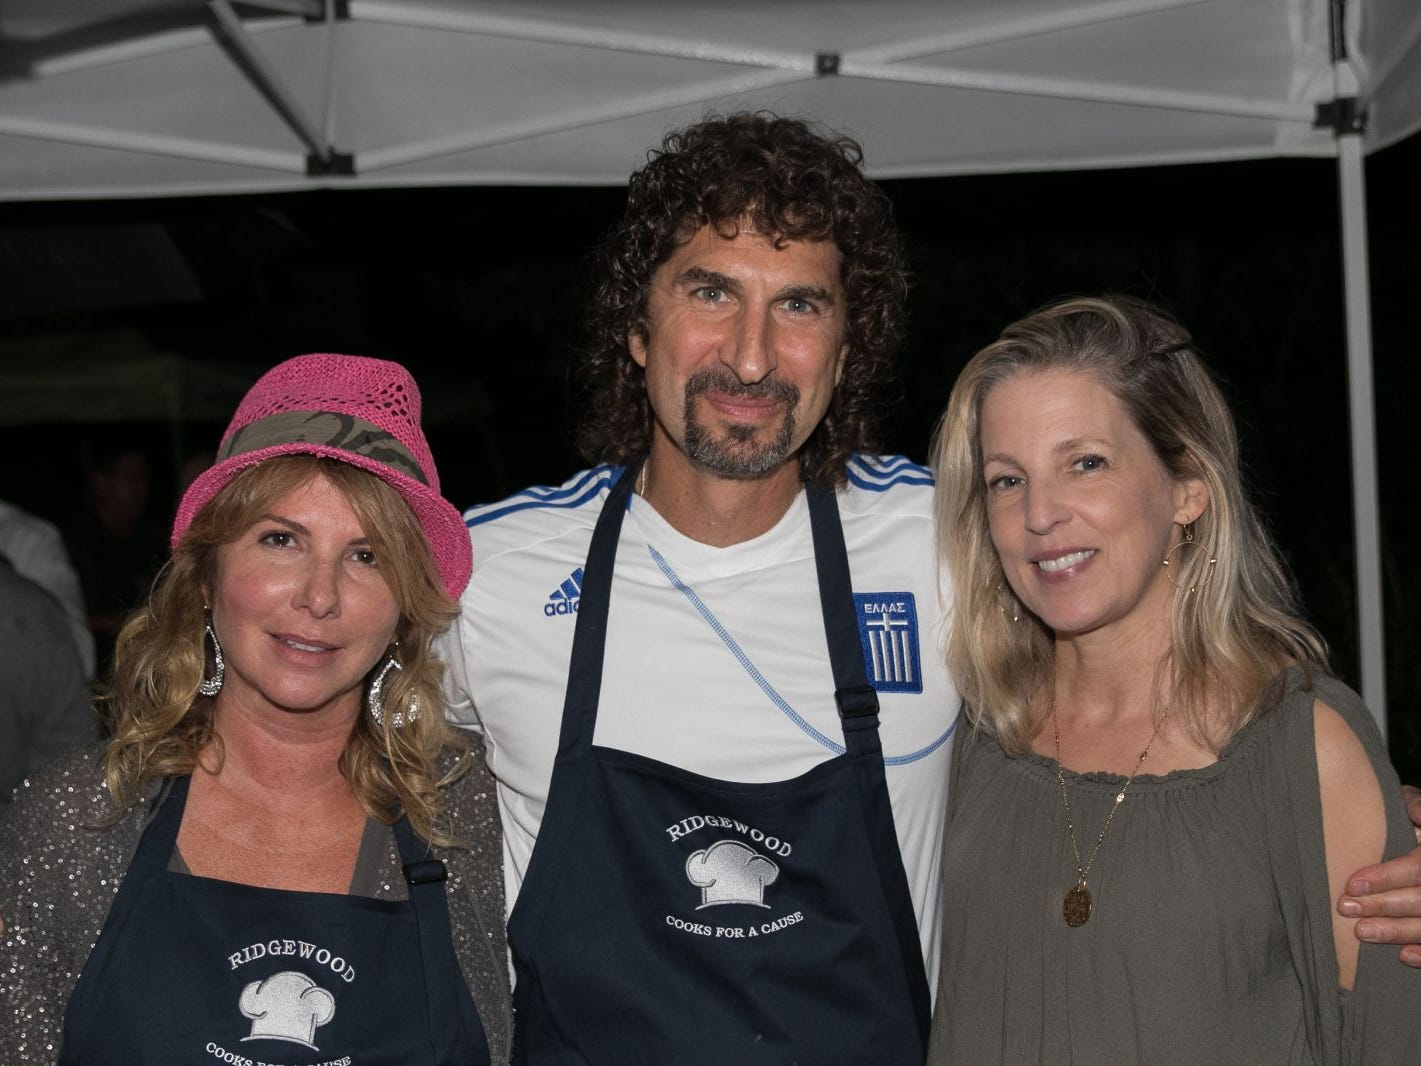 "Rebecca Nelson, George Nikvas, Colleen Trevison. Pam Chmiel, The Tres Amigos Paella Company (David Colin, Joe Scanlon and Jeff Saladucha), The Jims (Jim Gibney and Jim Toscano), George Nikias, Ron Oscher and Neil Murphy held Ridgewood Cooks for a Cause to benefit ""Cookies For Kids Cancer"" (Childhood Cancer Research) and YCS (Youth Consultaion Services) charities. 09/08/2018"